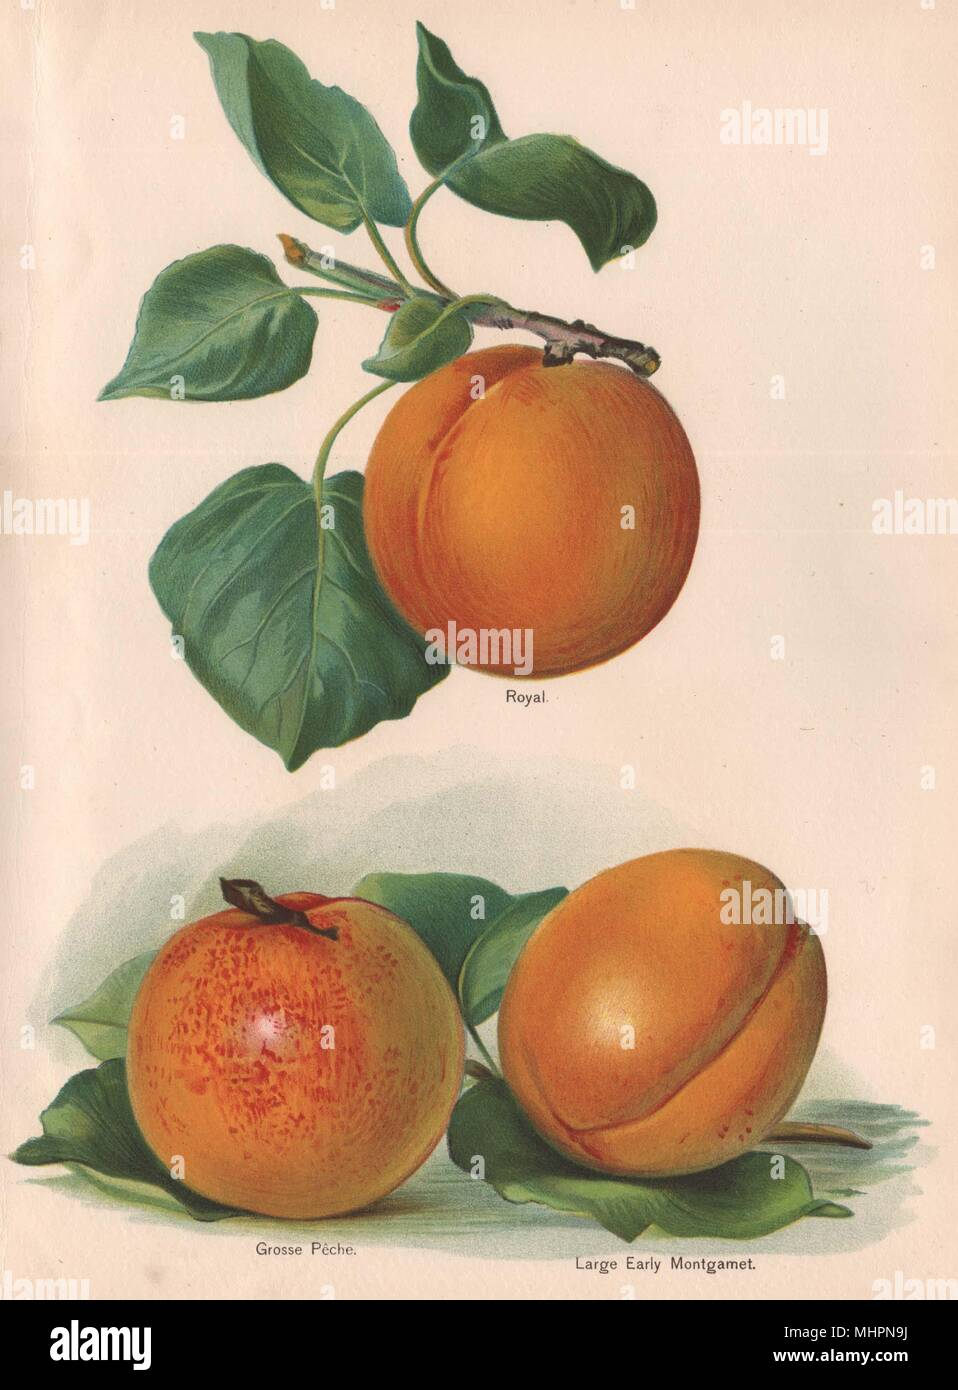 PEACHES. Royal; Grosse Pêche; Large Early Montgamet. WRIGHT Chromolitho 1892 - Stock Image